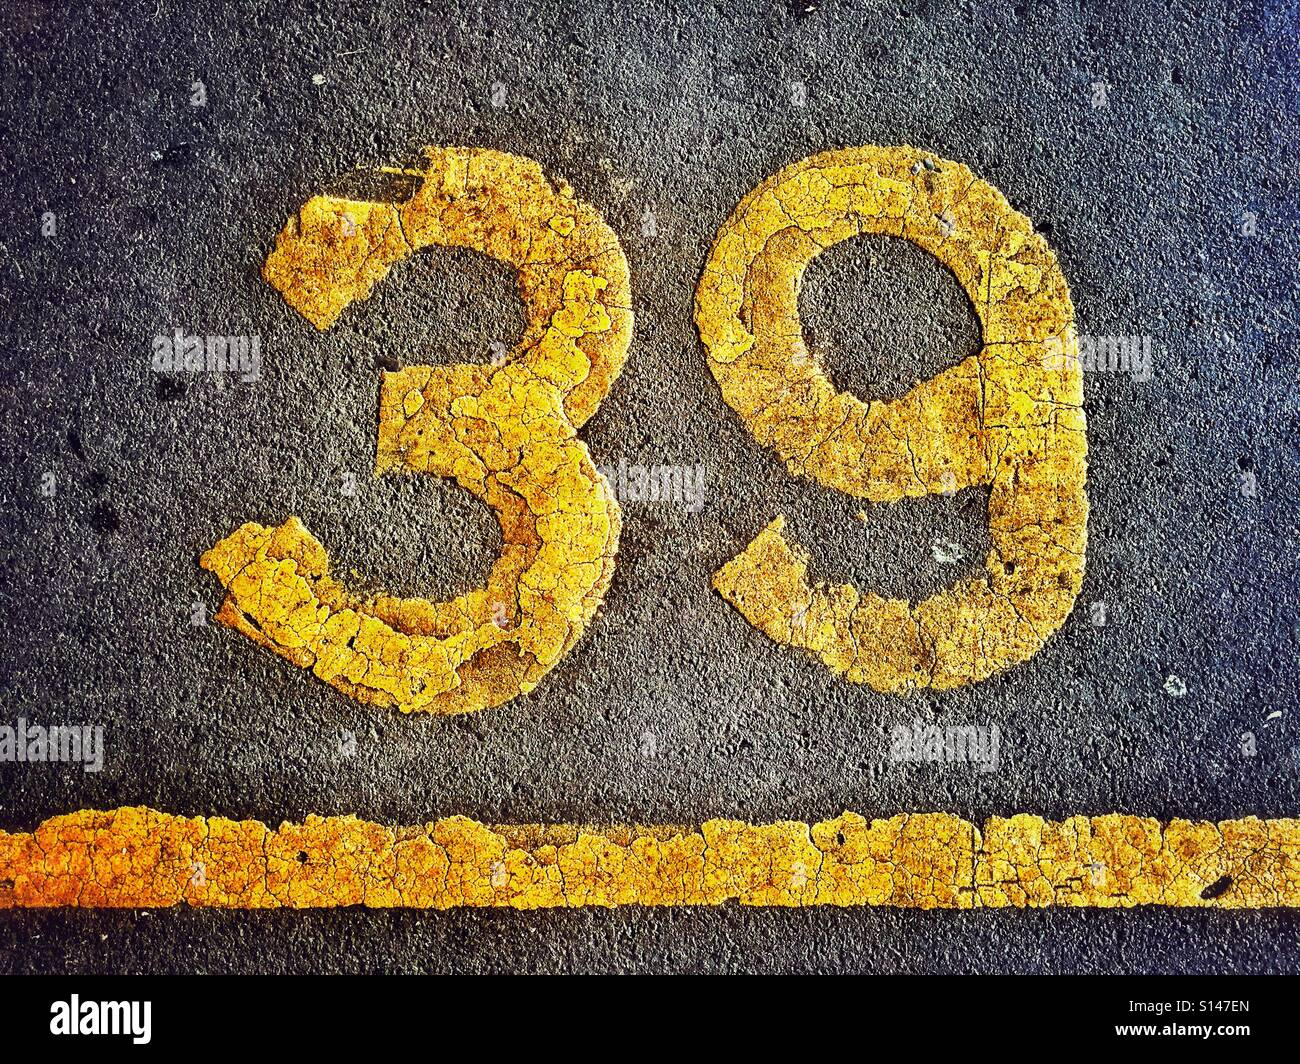 The Number 39 is painted on the Tarmac surface of a Car Park to help identify a particular car parking bay number/area. - Stock Image